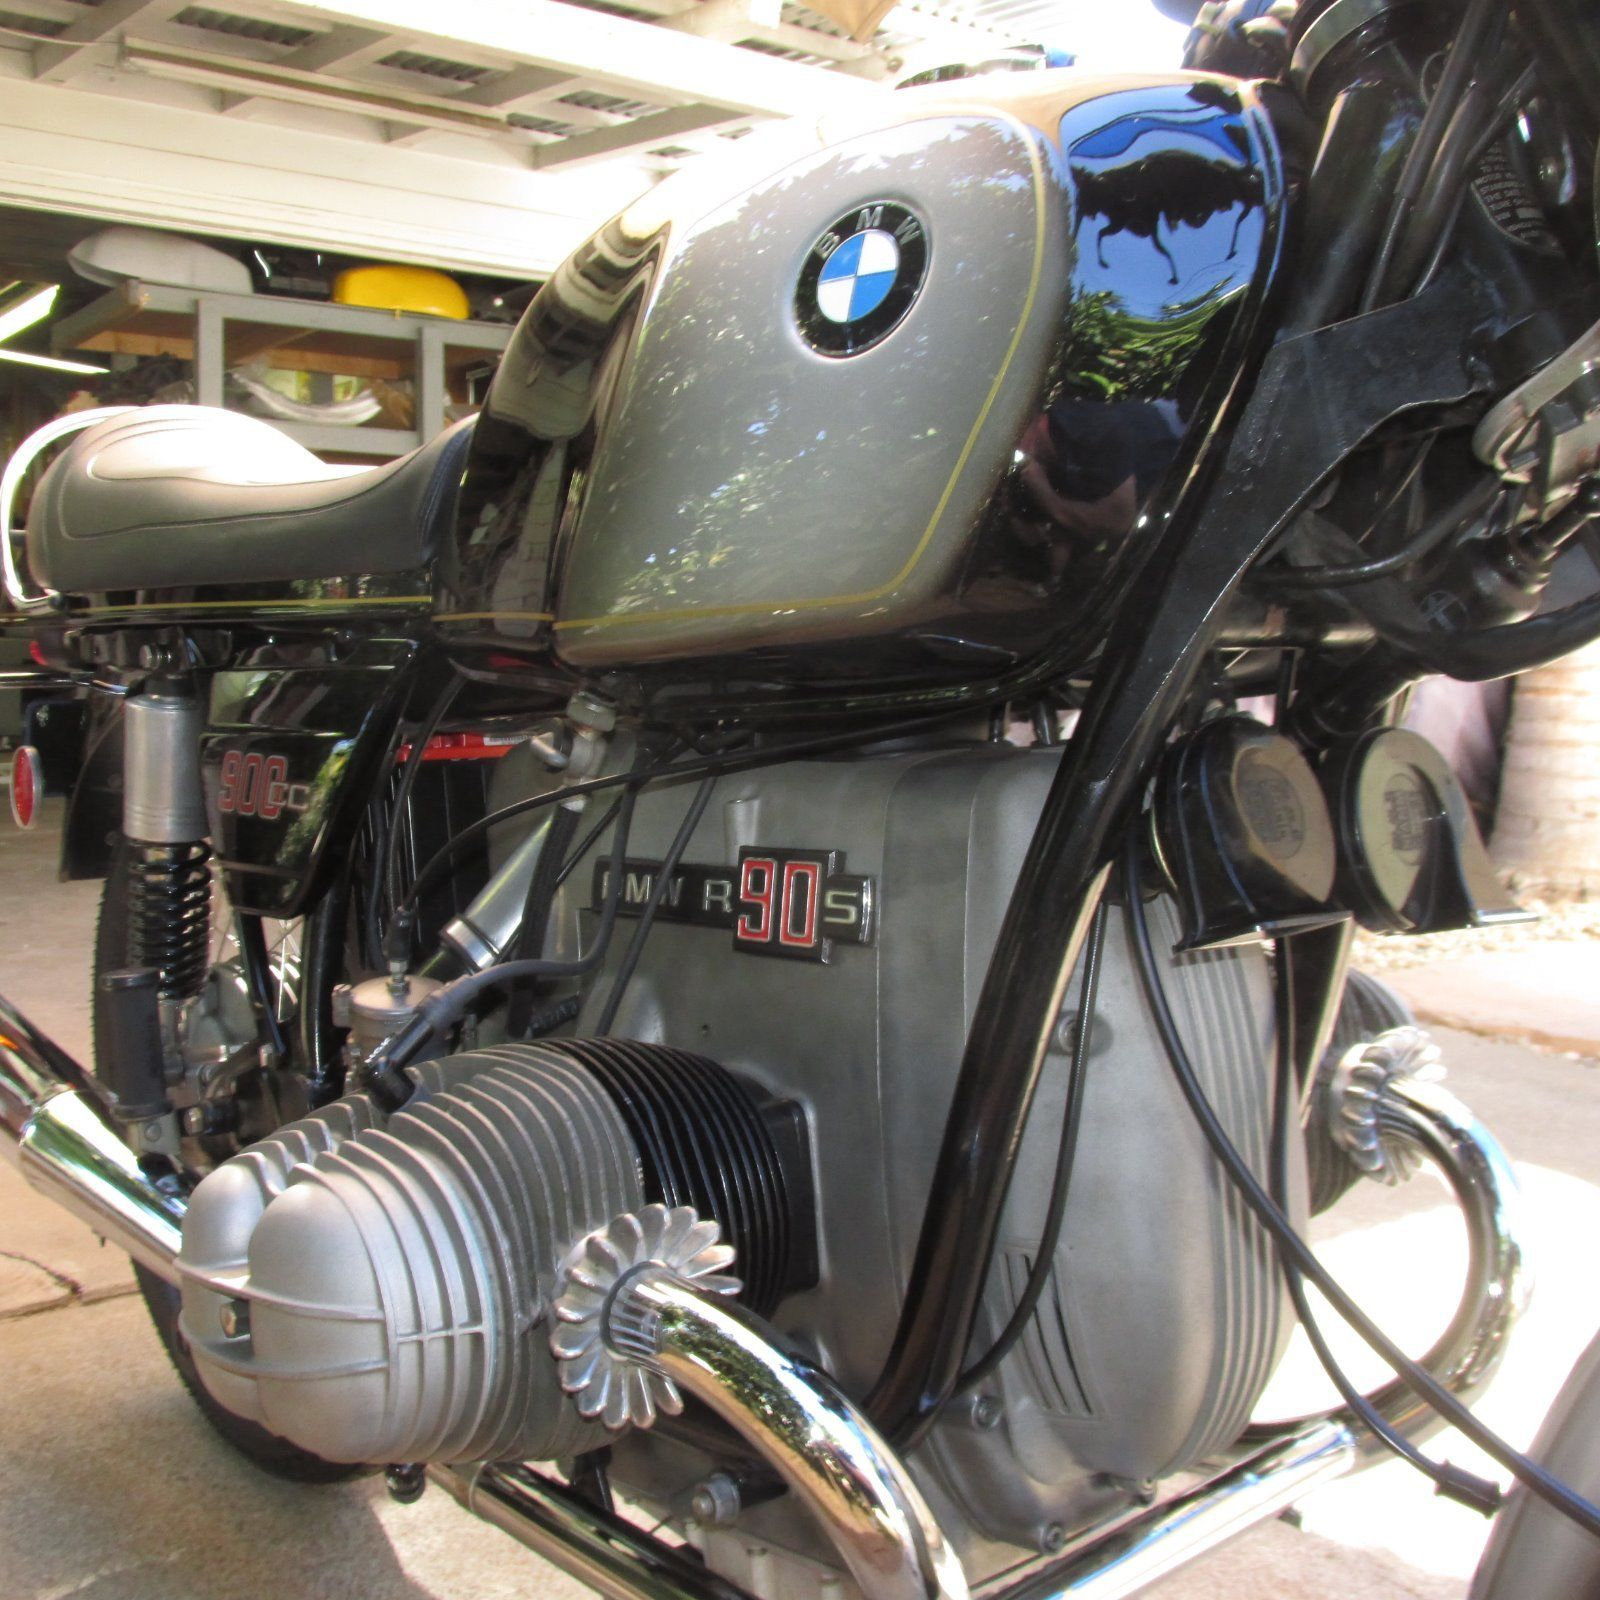 Restored Bmw R90s 1974 Photographs At Classic Bikes